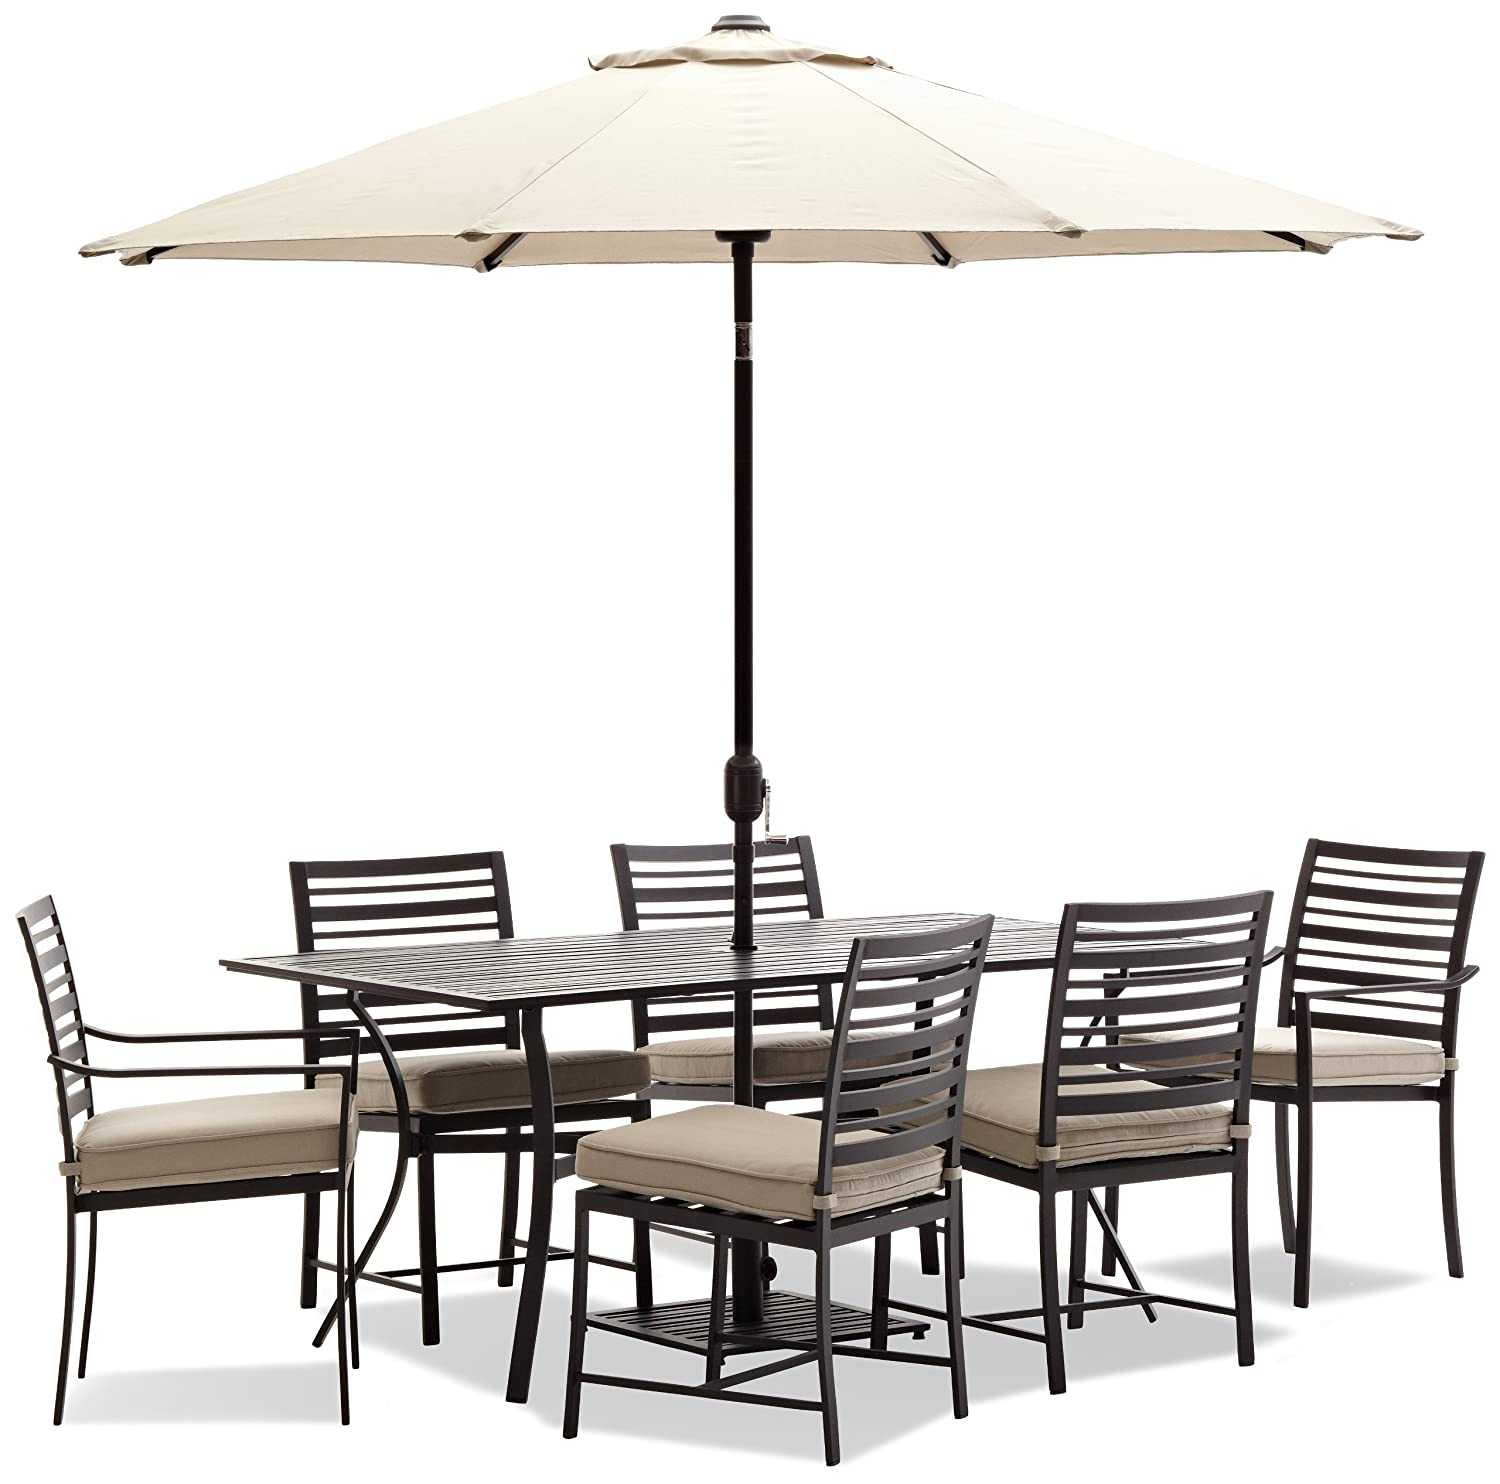 Rectangular Dining Table 6 Seater Outdoor Aluminum Black